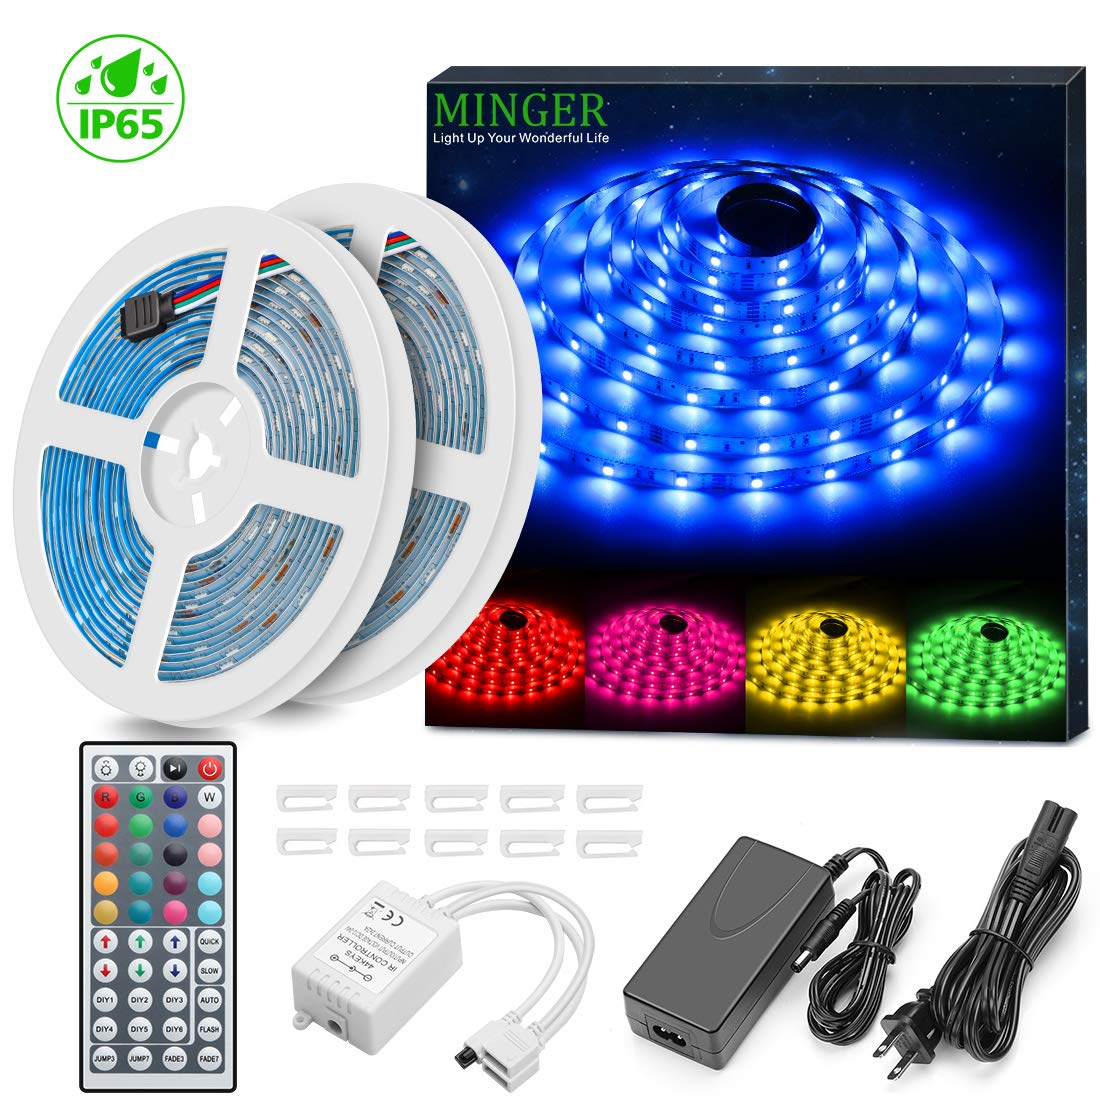 Minger LED Strip Lights Kit, Waterproof 2x5m(32.8ft in Total) 5050 RGB 300led Strips Lighting Flexible Color Changing with 44 Key IR Remote Ideal for Home, Kitchen, Christams, DC 12V 4A UL Listed